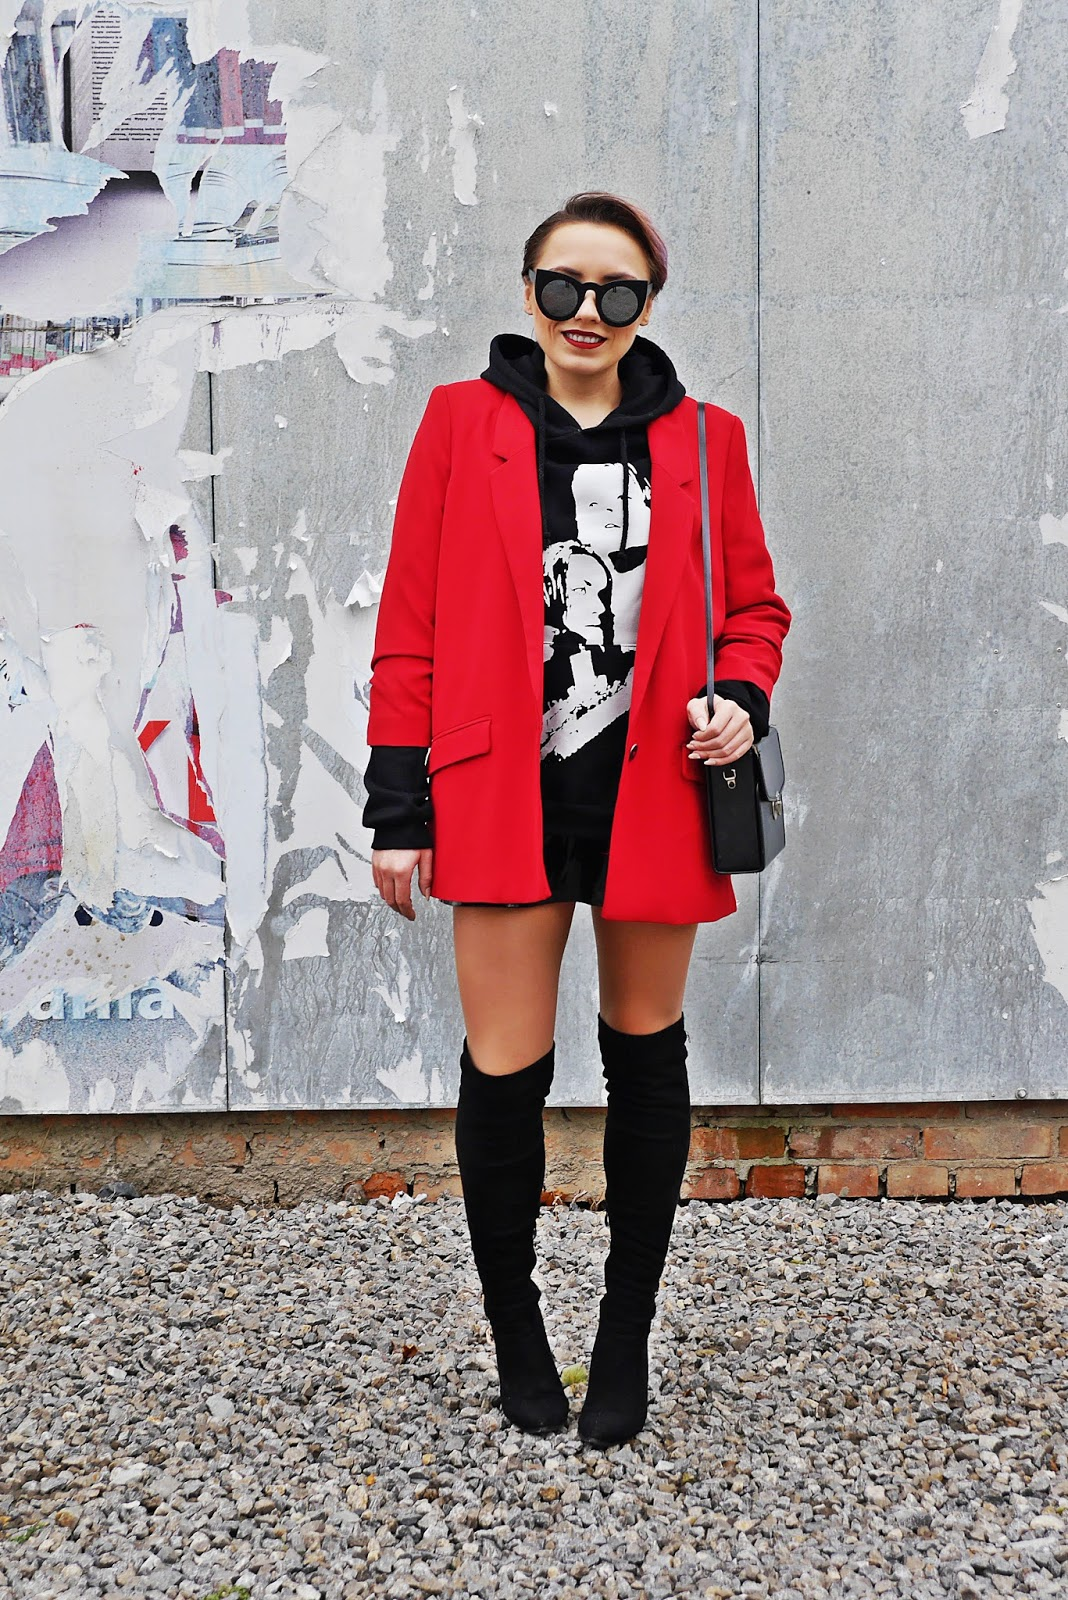 3_red_jacket_black_hoodie_titanic_karyn_blog_modowy_171017a